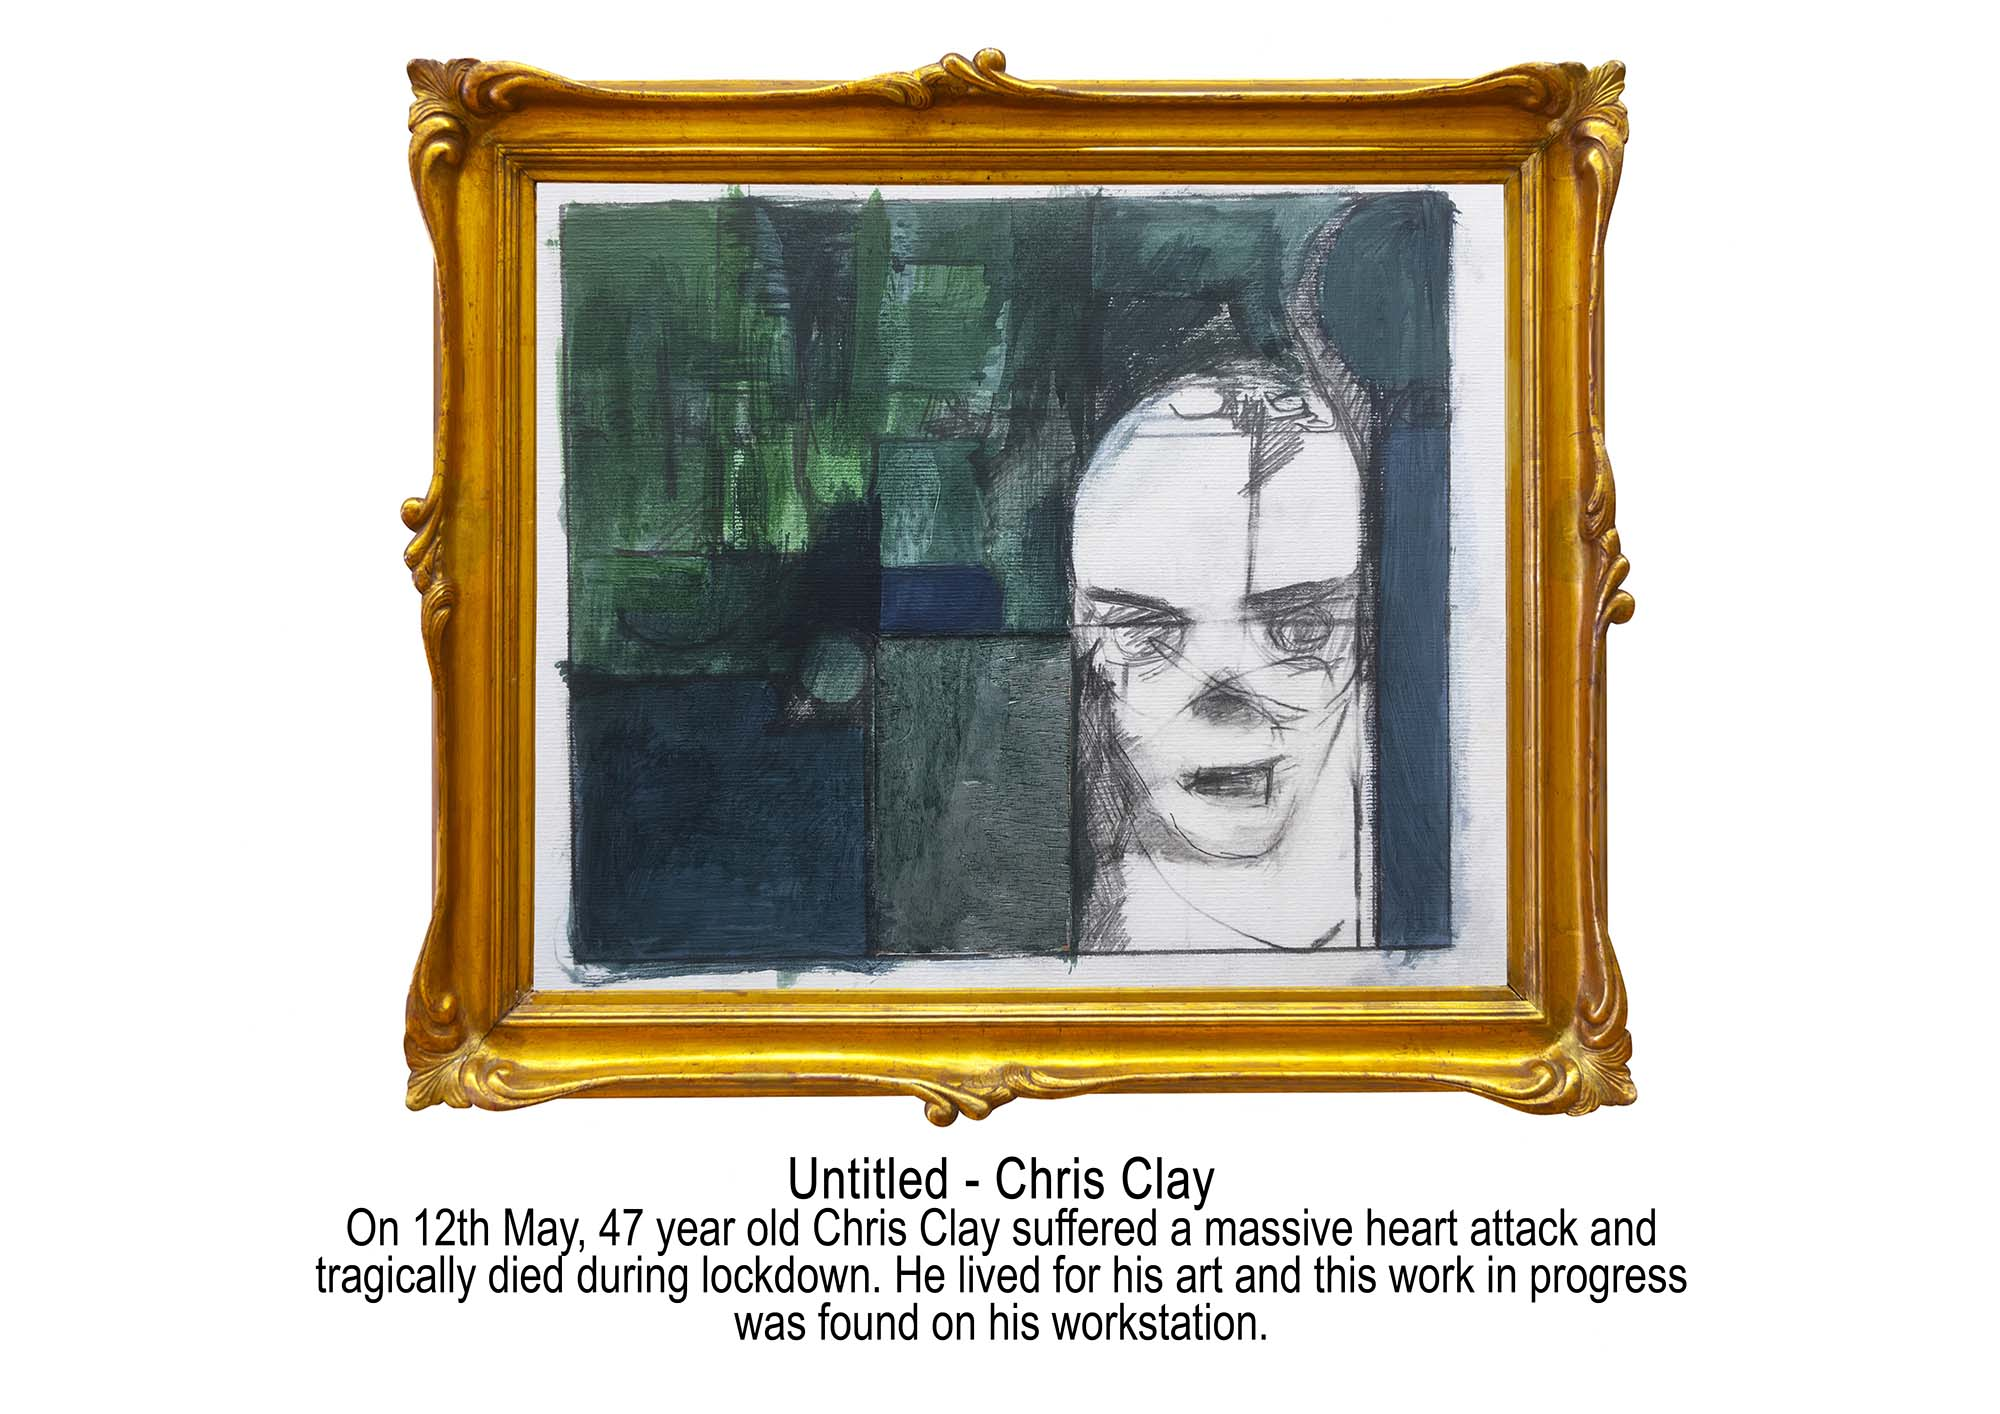 Chris Clay